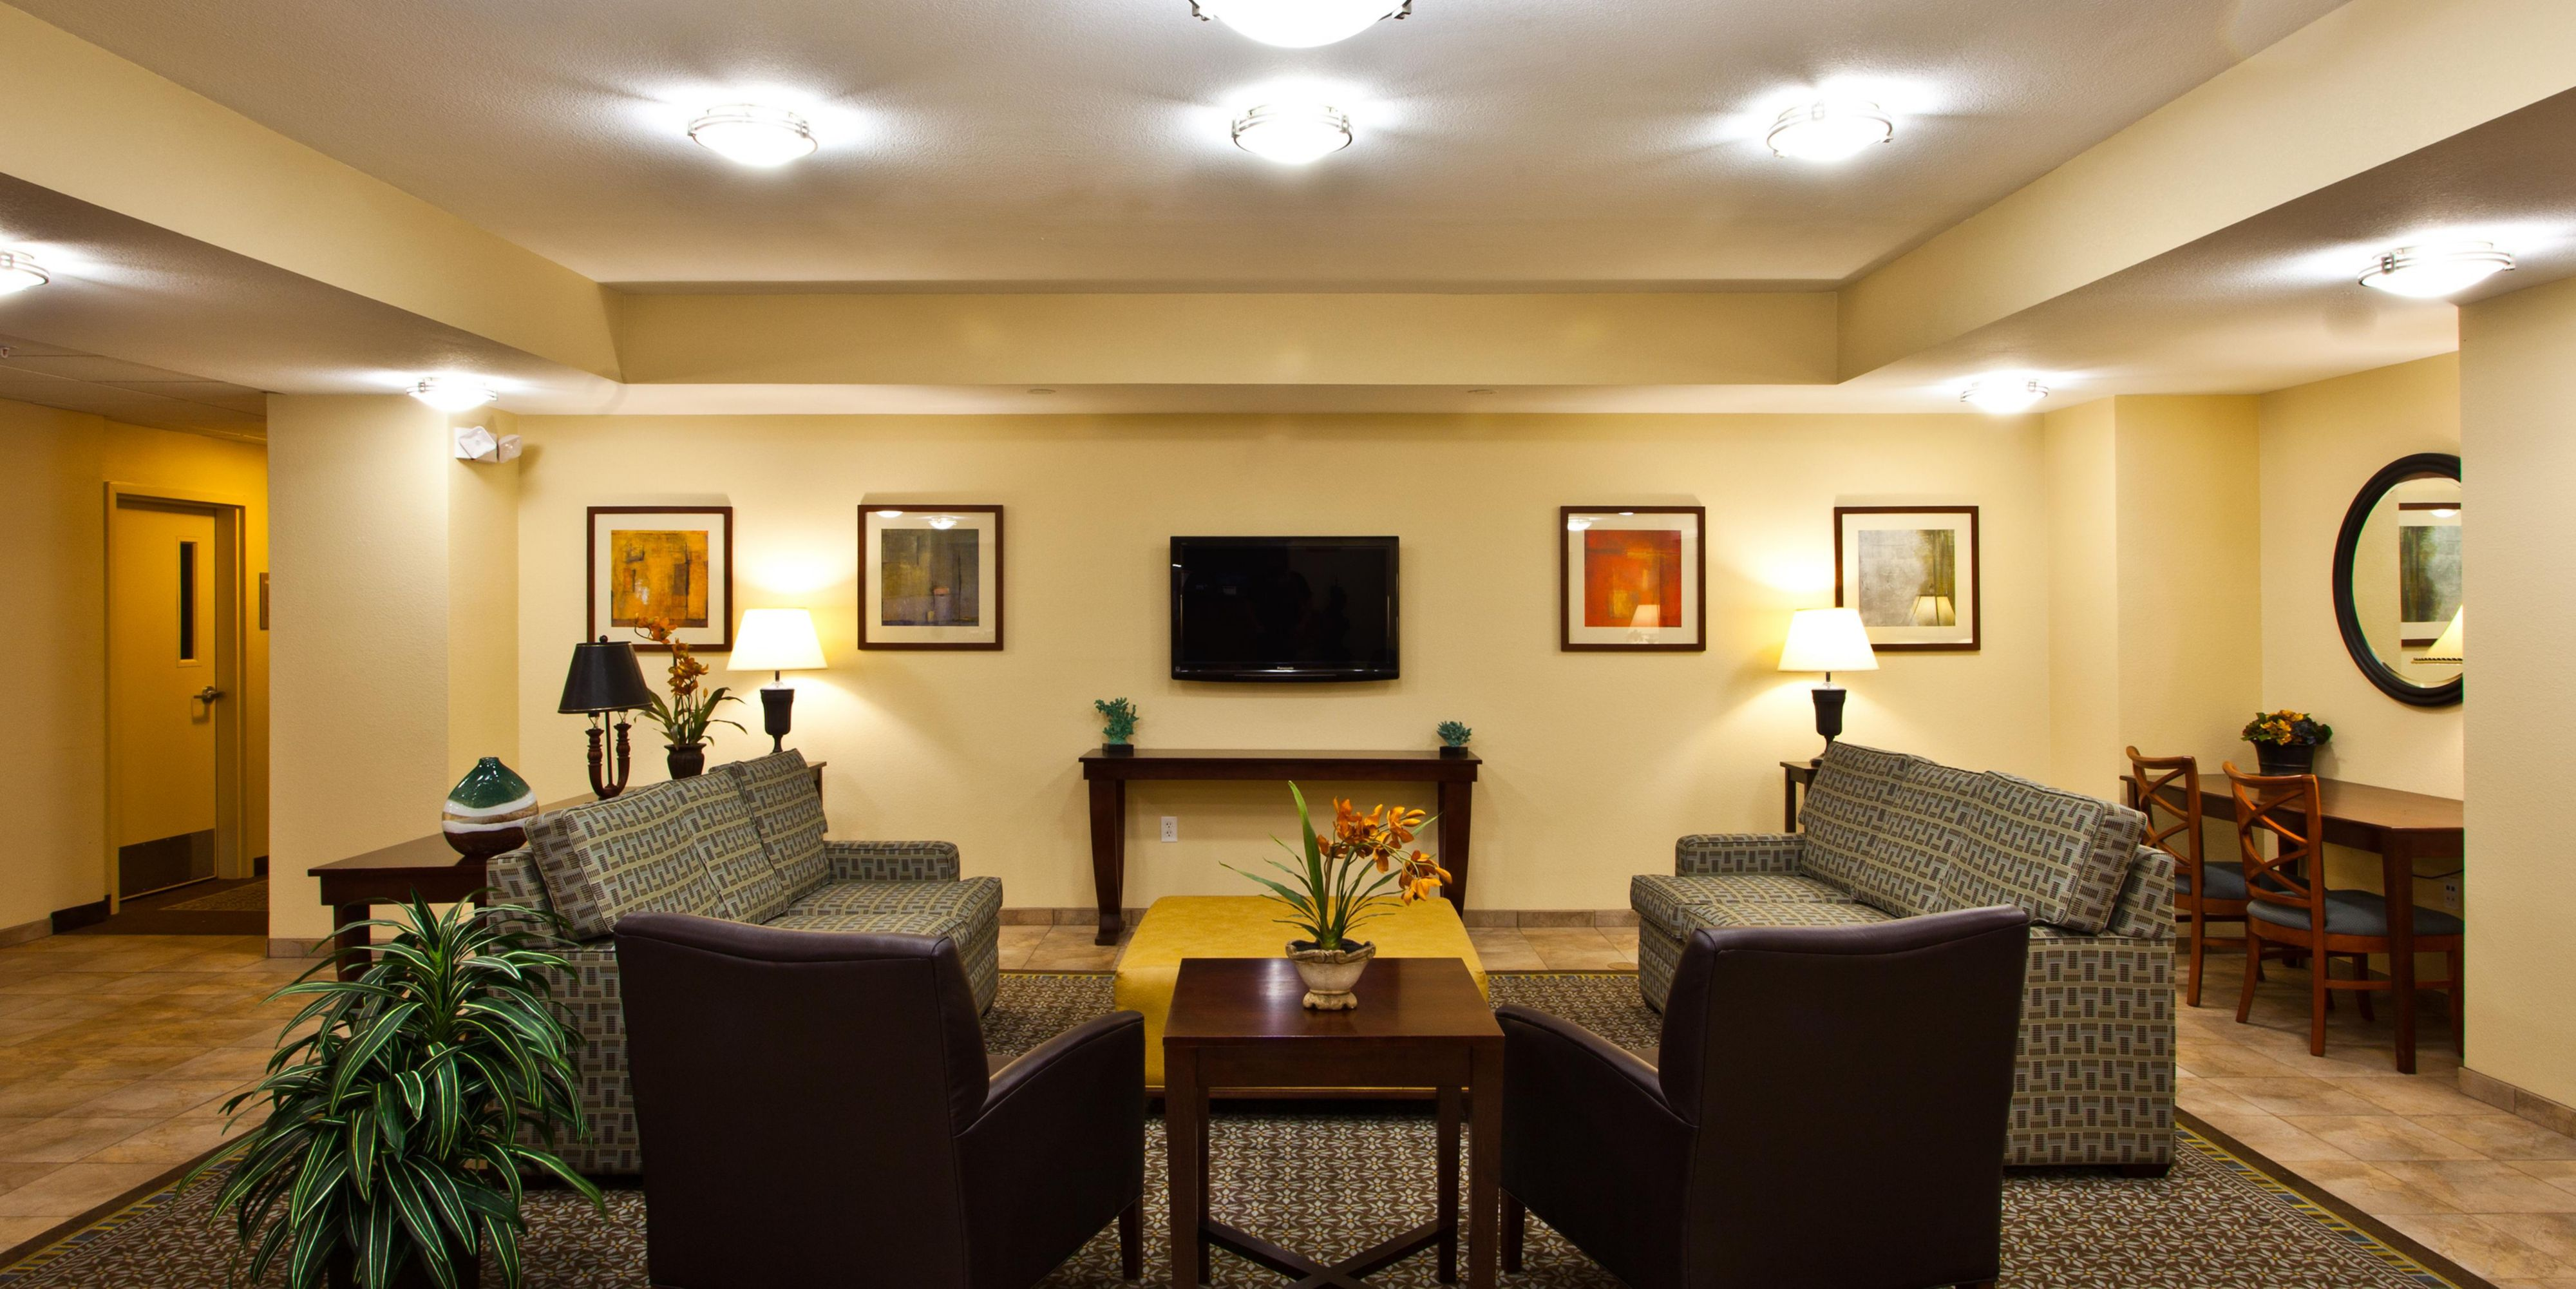 Tallahassee Hotels: Candlewood Suites Tallahassee   Extended Stay Hotel In  Tallahassee, Florida